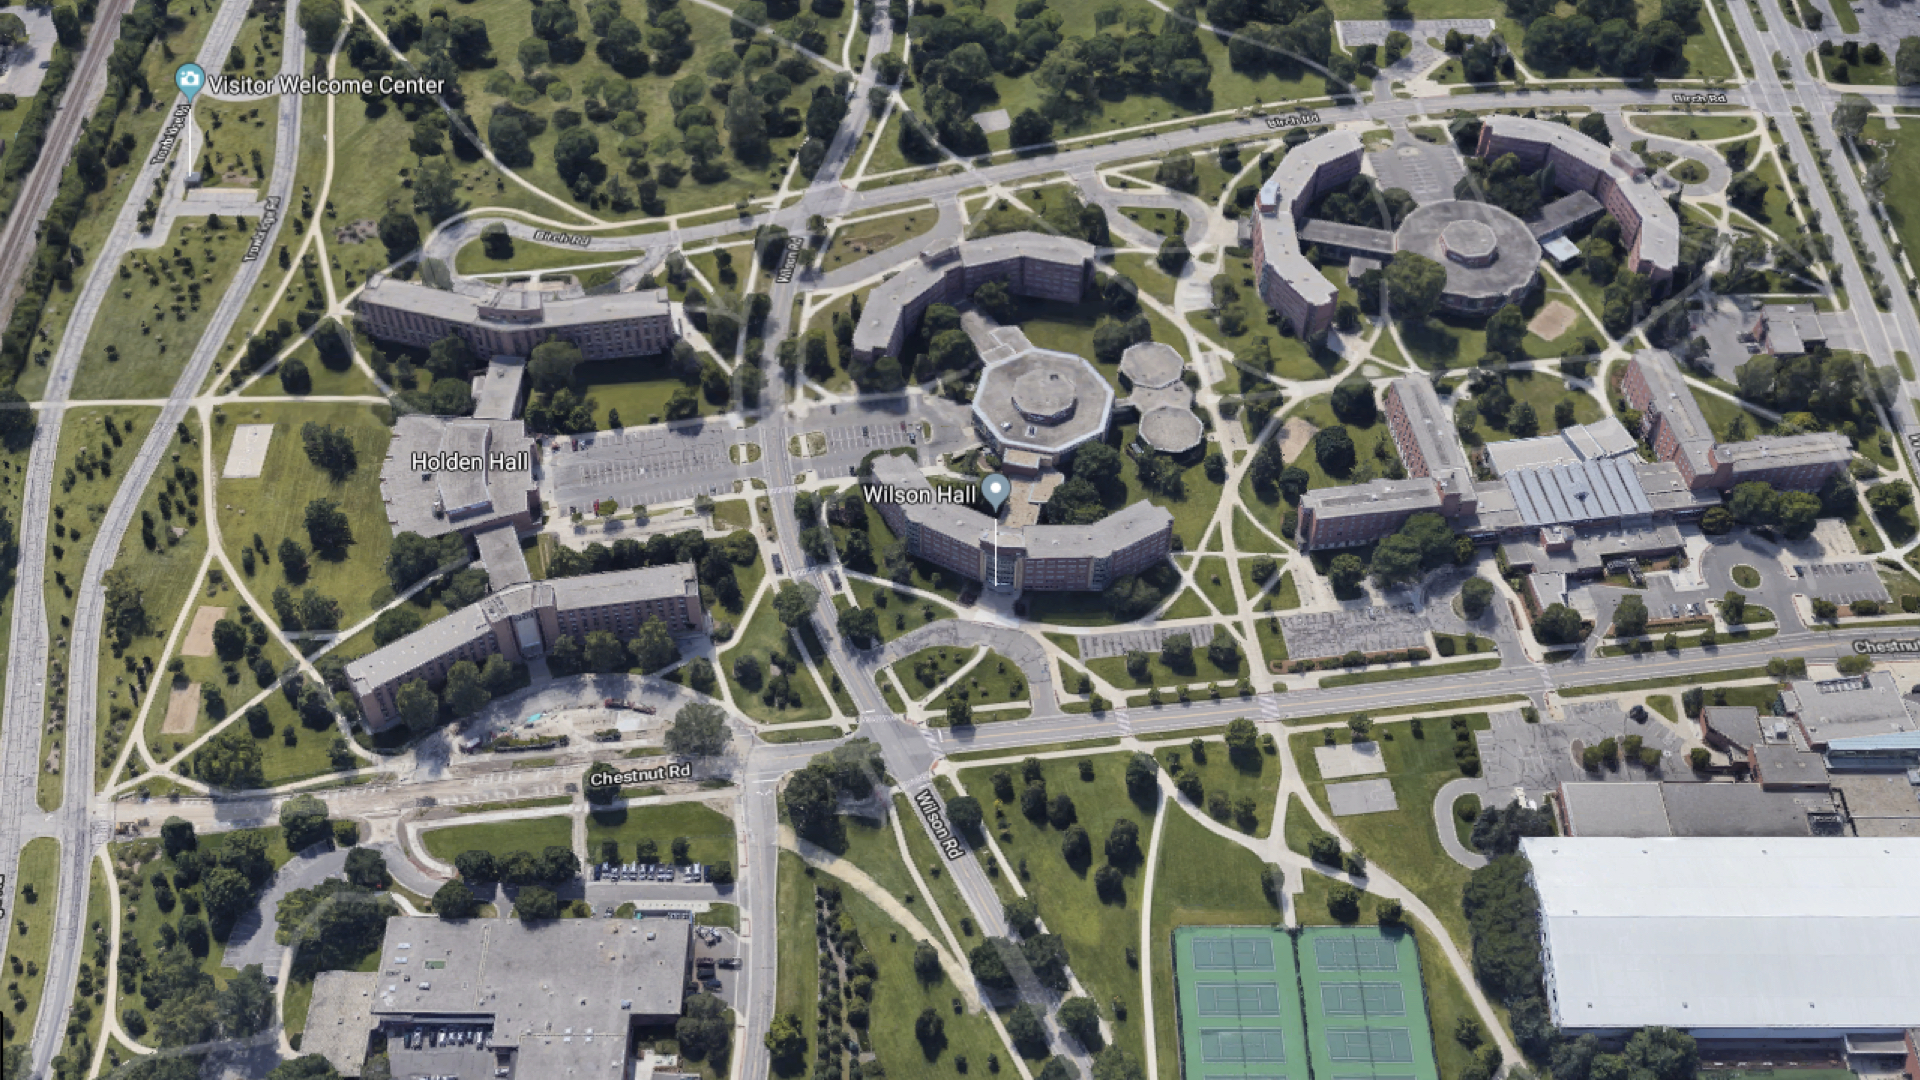 An aeriel view of the grounds of Michigan State University.